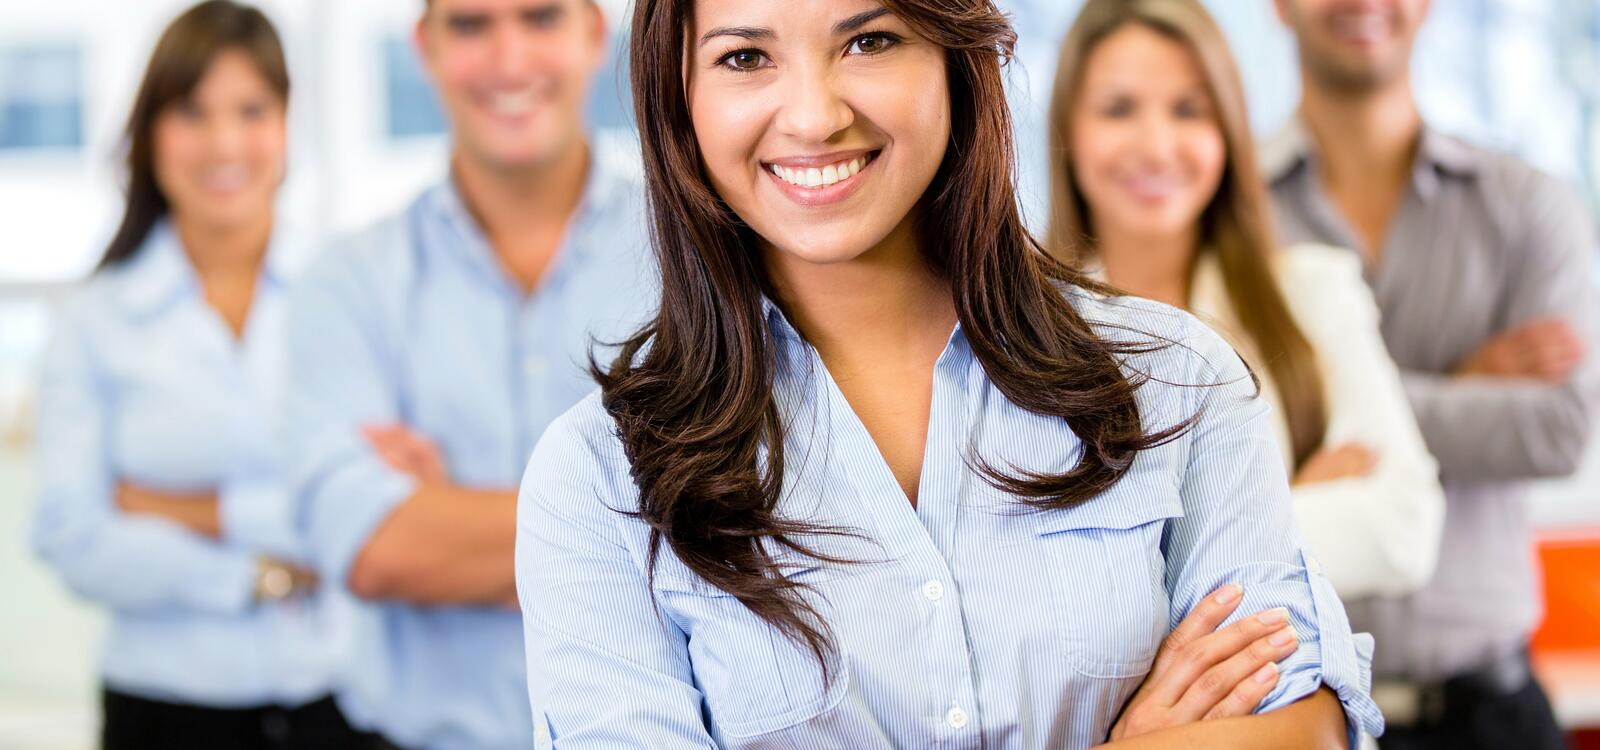 A woman crosses her arms in front of her and smiles as she stands in front of her peers